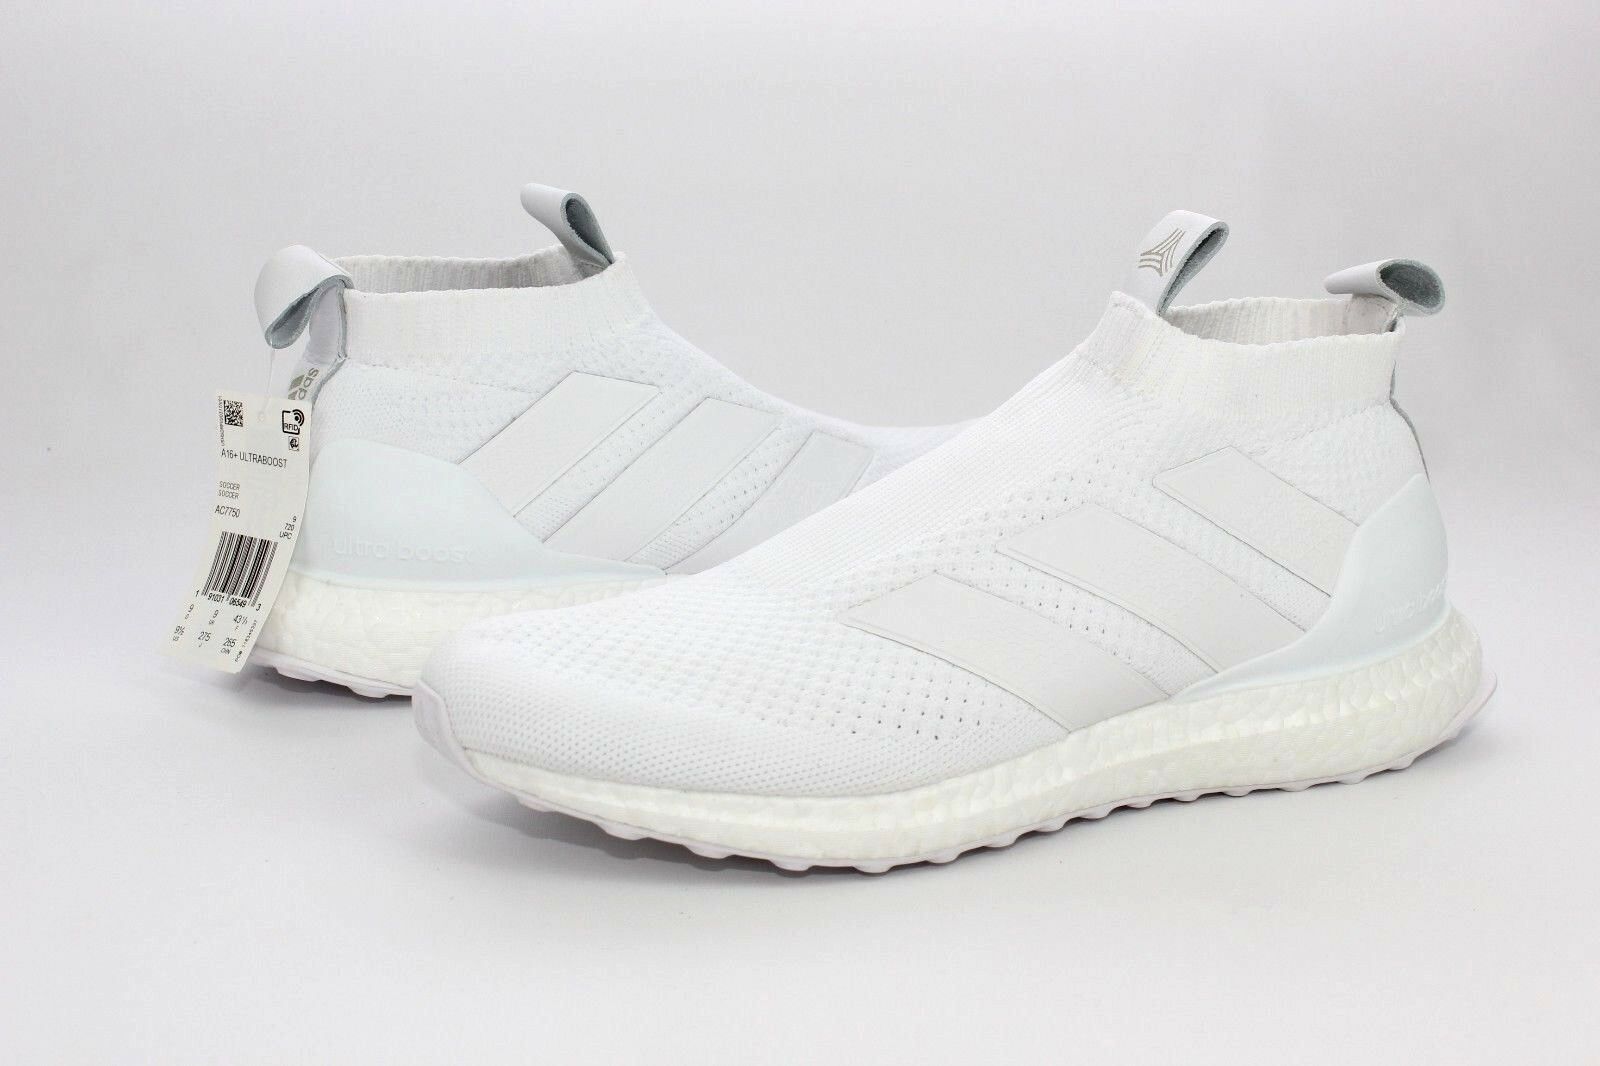 Adidas A16 + UltraBOOST  White Soccer Running shoes Mens Size 9.5 NIB AC7750